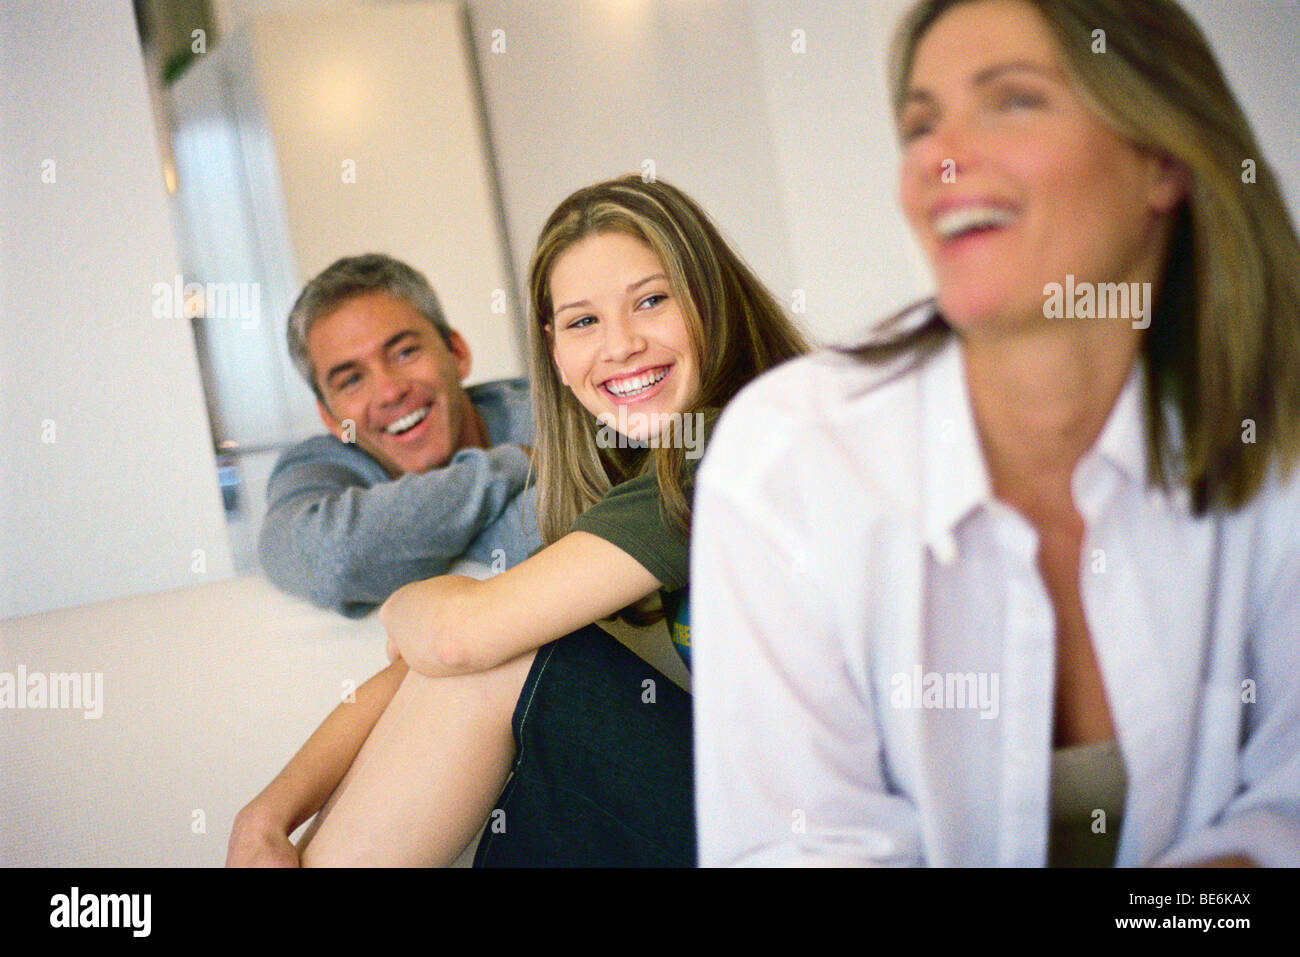 Teenage girl sitting with parents, all smiling, mother laughing - Stock Image